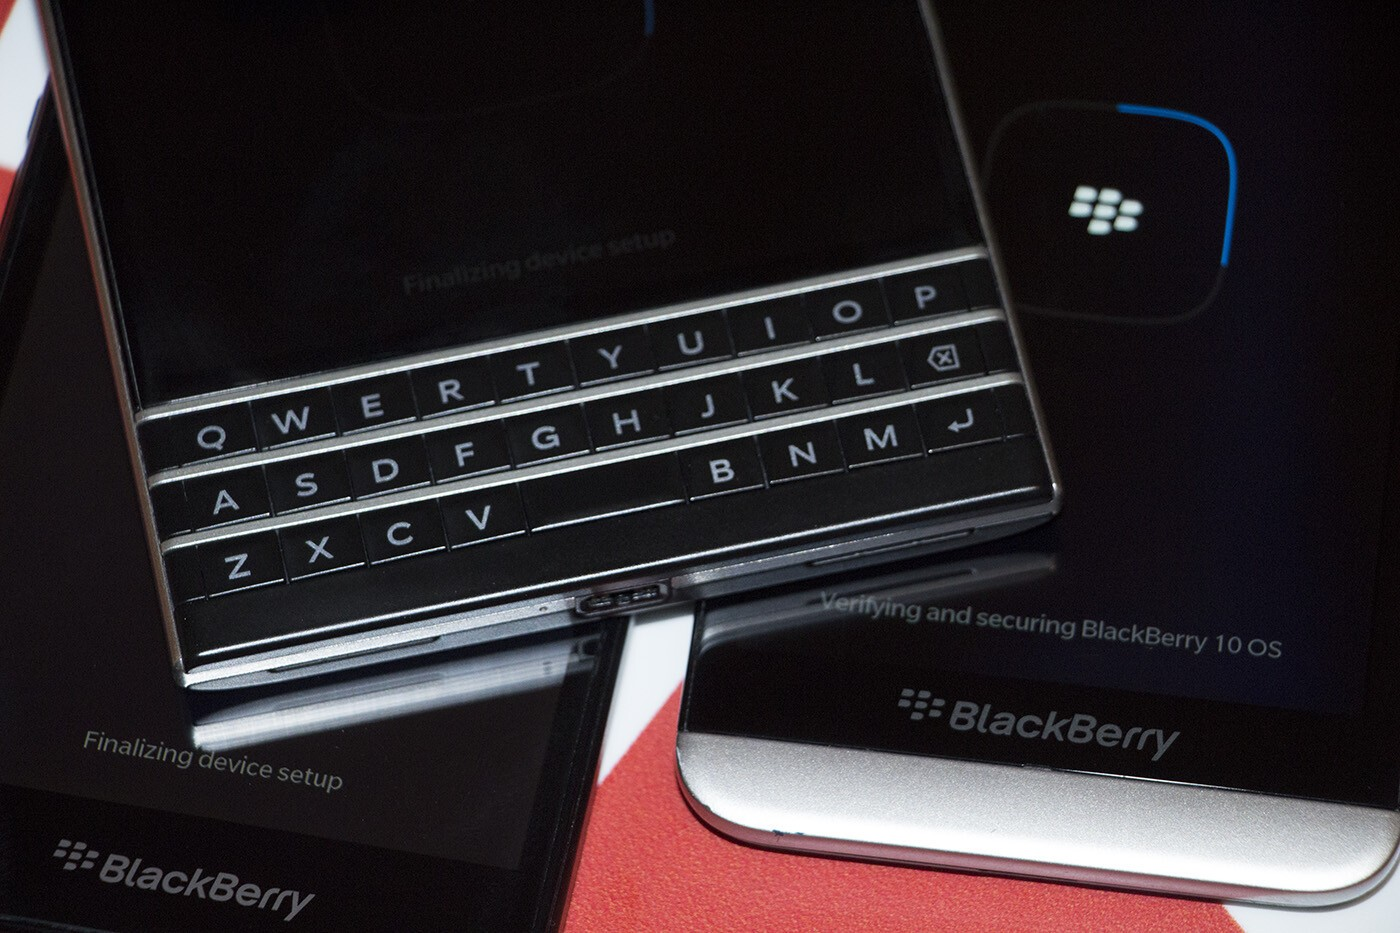 TELUS rolling out OS 10.3.1.2708 to several BlackBerry 10 devices